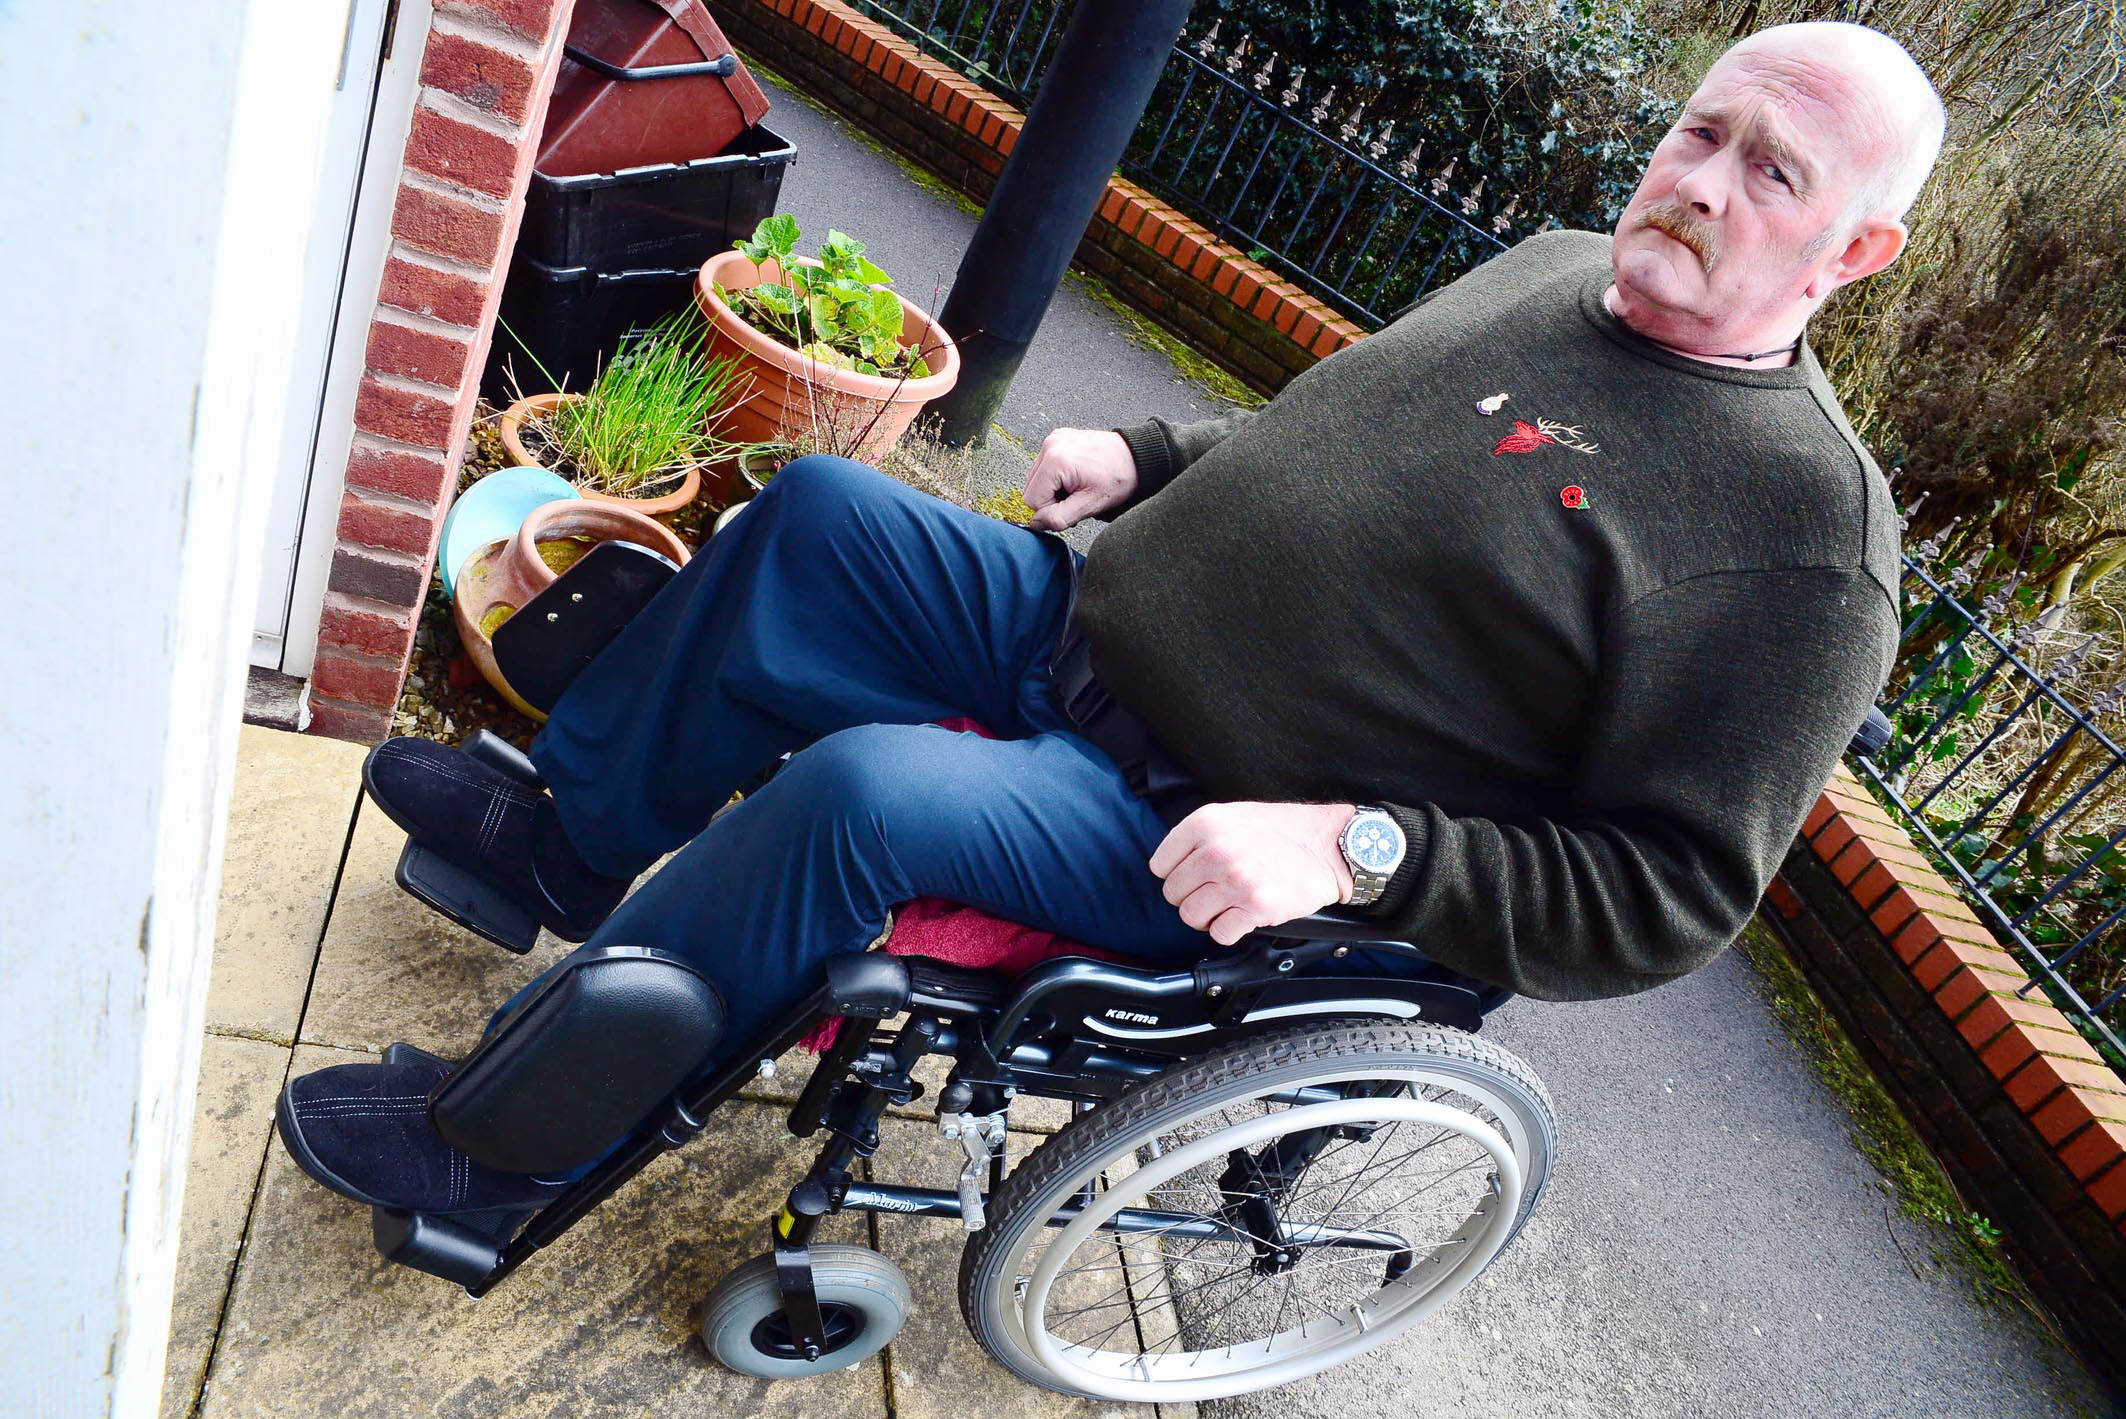 'Clamping firm are pirates' says man fined while recovering from stroke